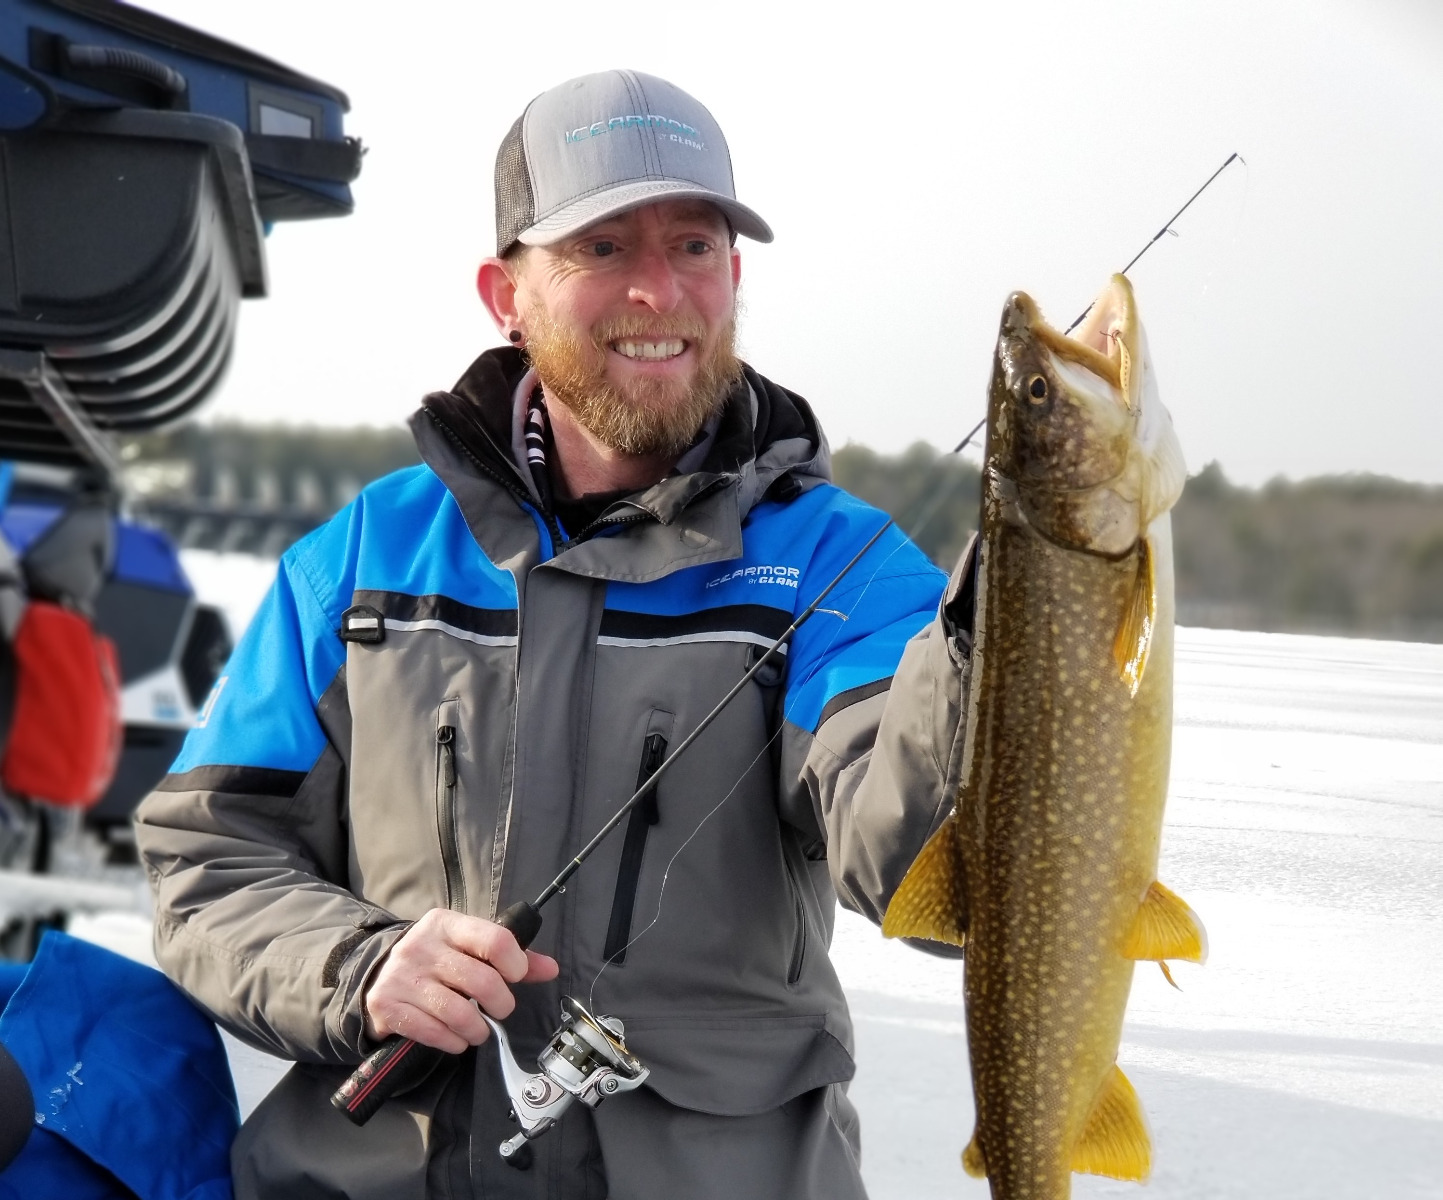 Fishing for Lake Trout on the Ice